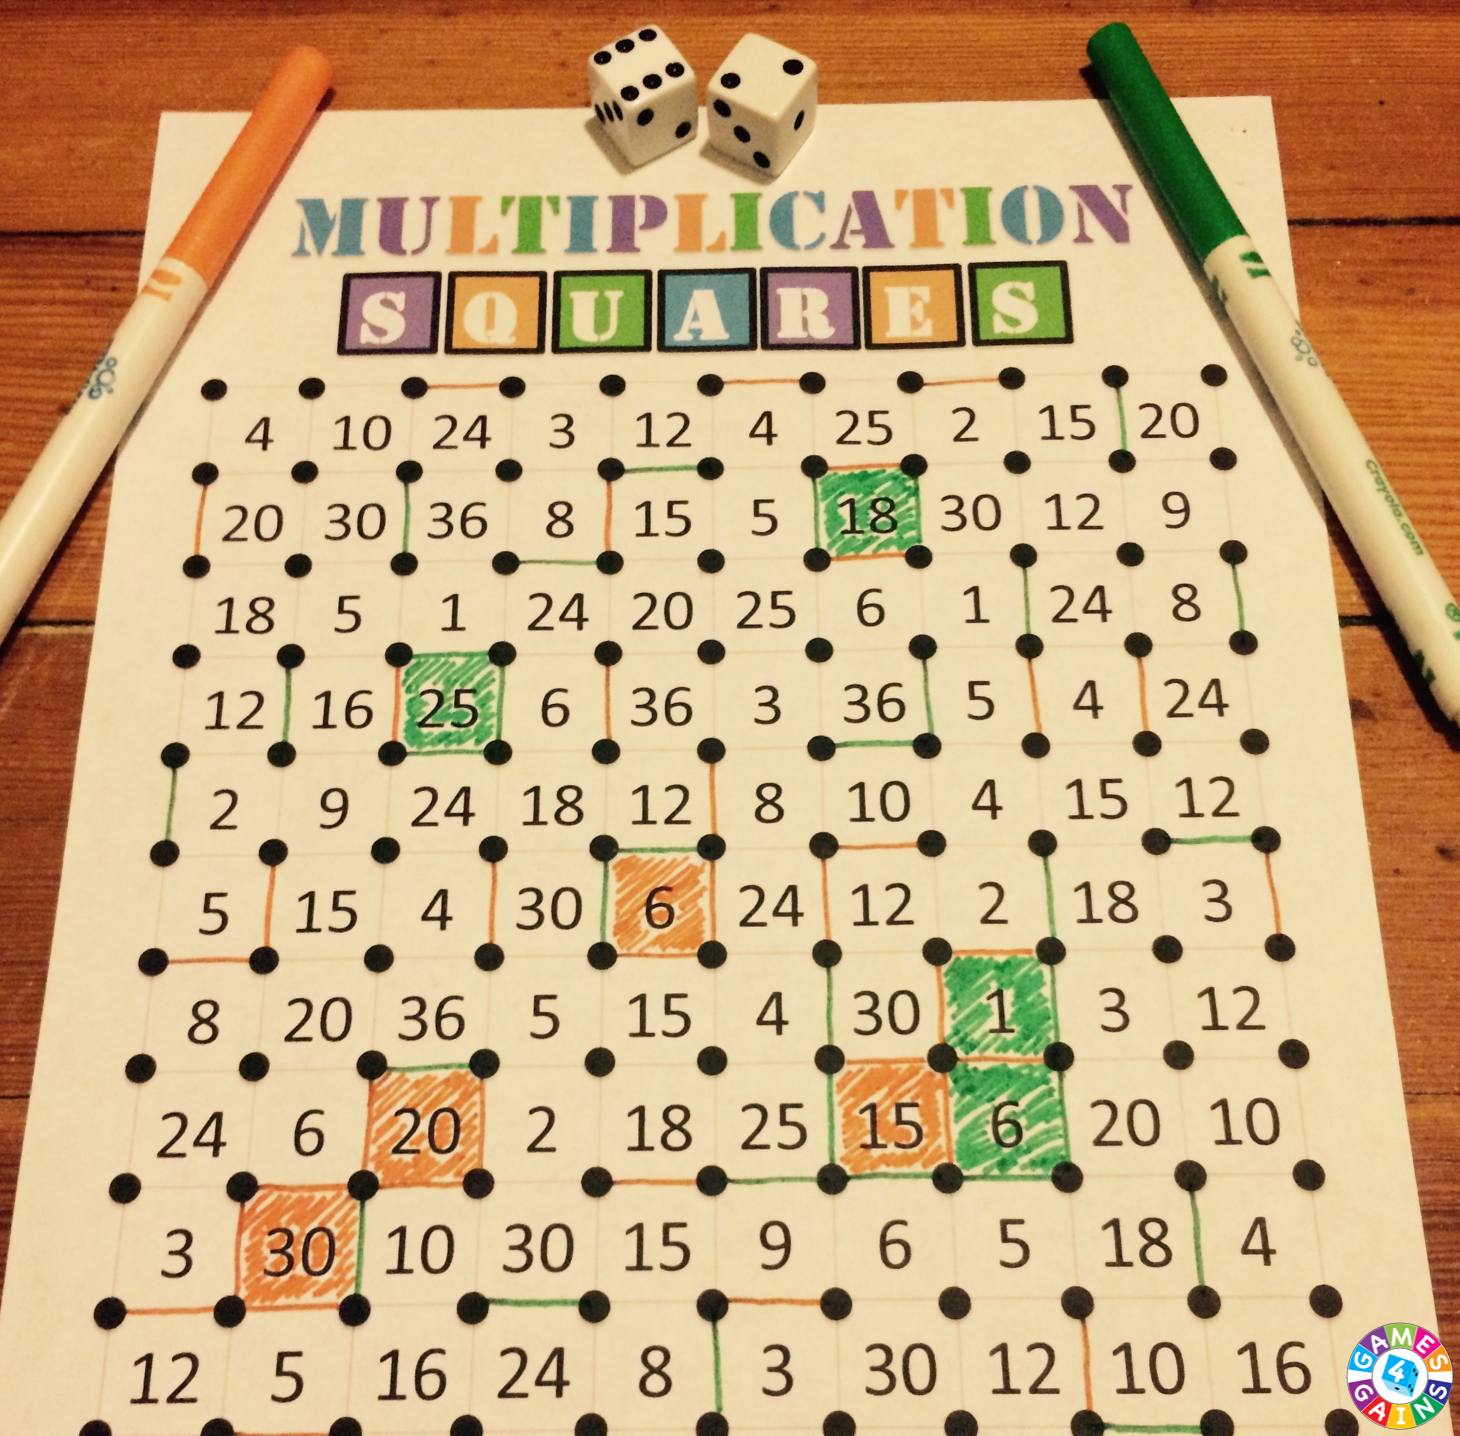 Weve Mathified The Squares Game Games 4 Gains – Multiplication Squares Worksheet